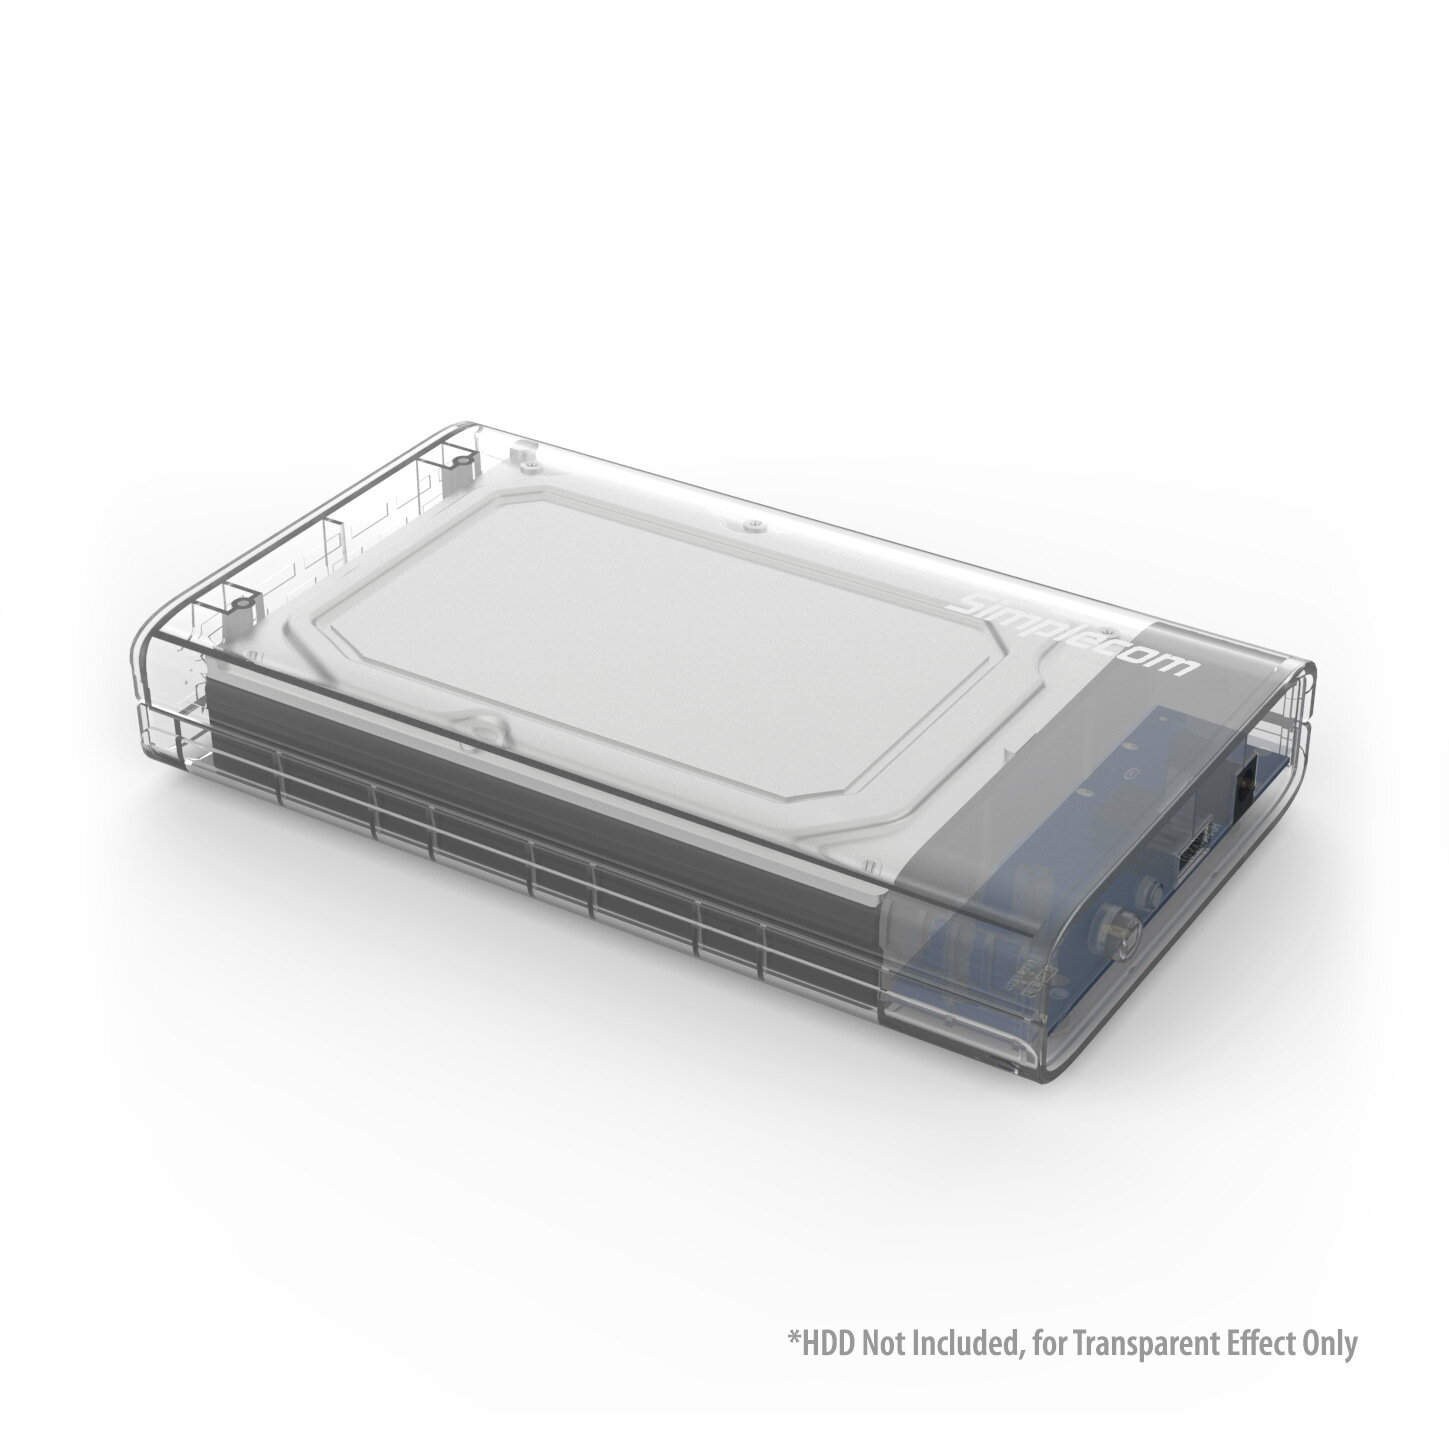 "Simplecom SE301 3.5"" SATA to USB 3.0 Hard Drive Docking Enclosure Clear"